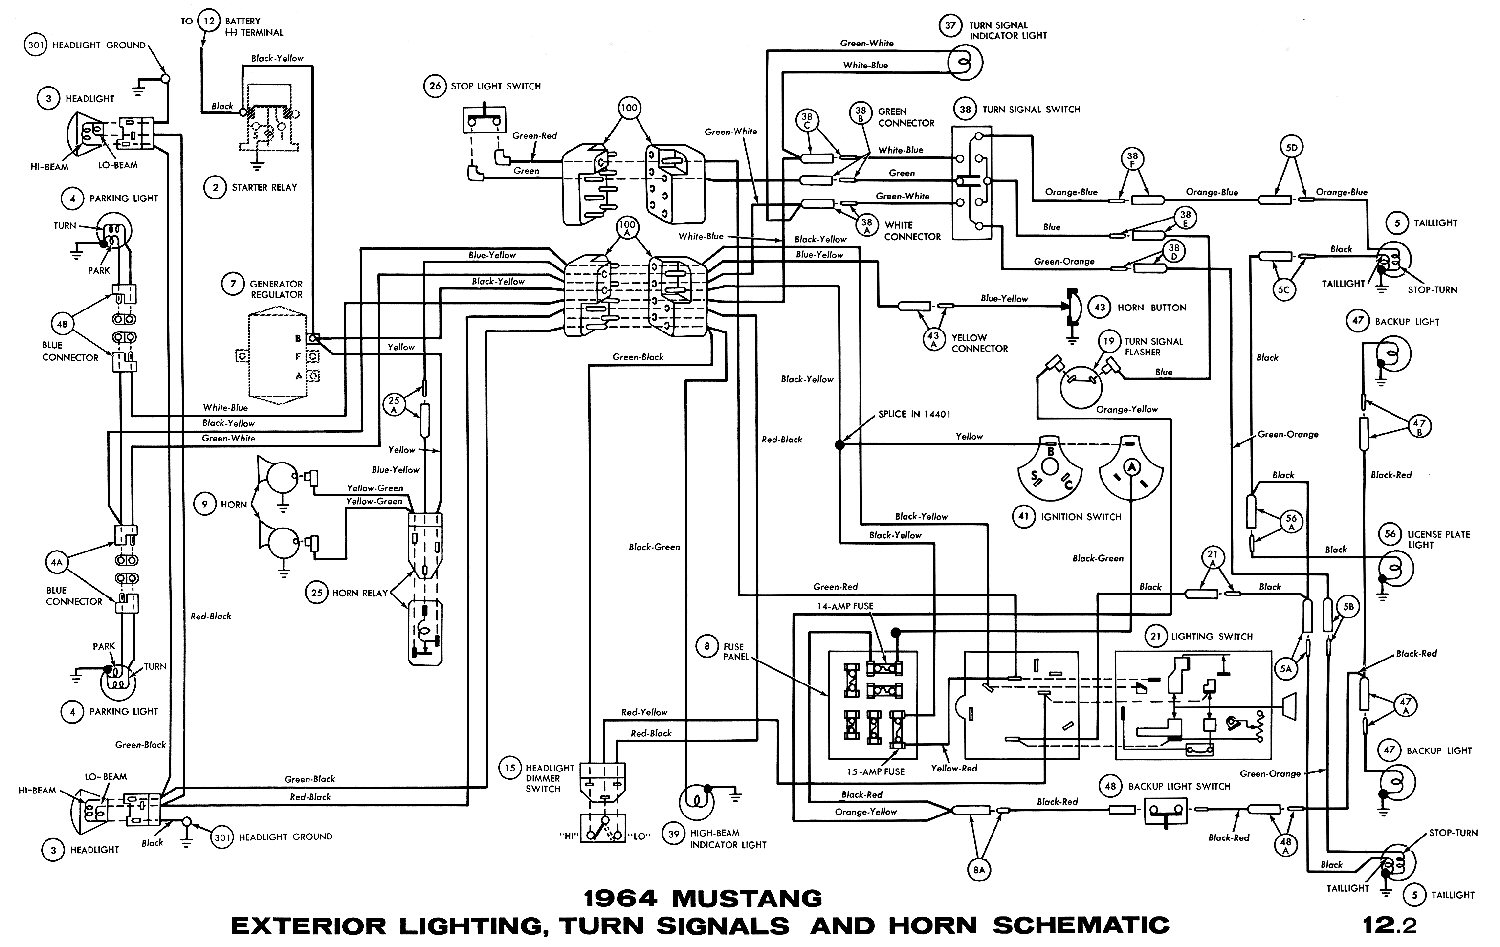 1964i 1964 mustang wiring diagrams average joe restoration 93 mustang turn signal wiring diagram at readyjetset.co